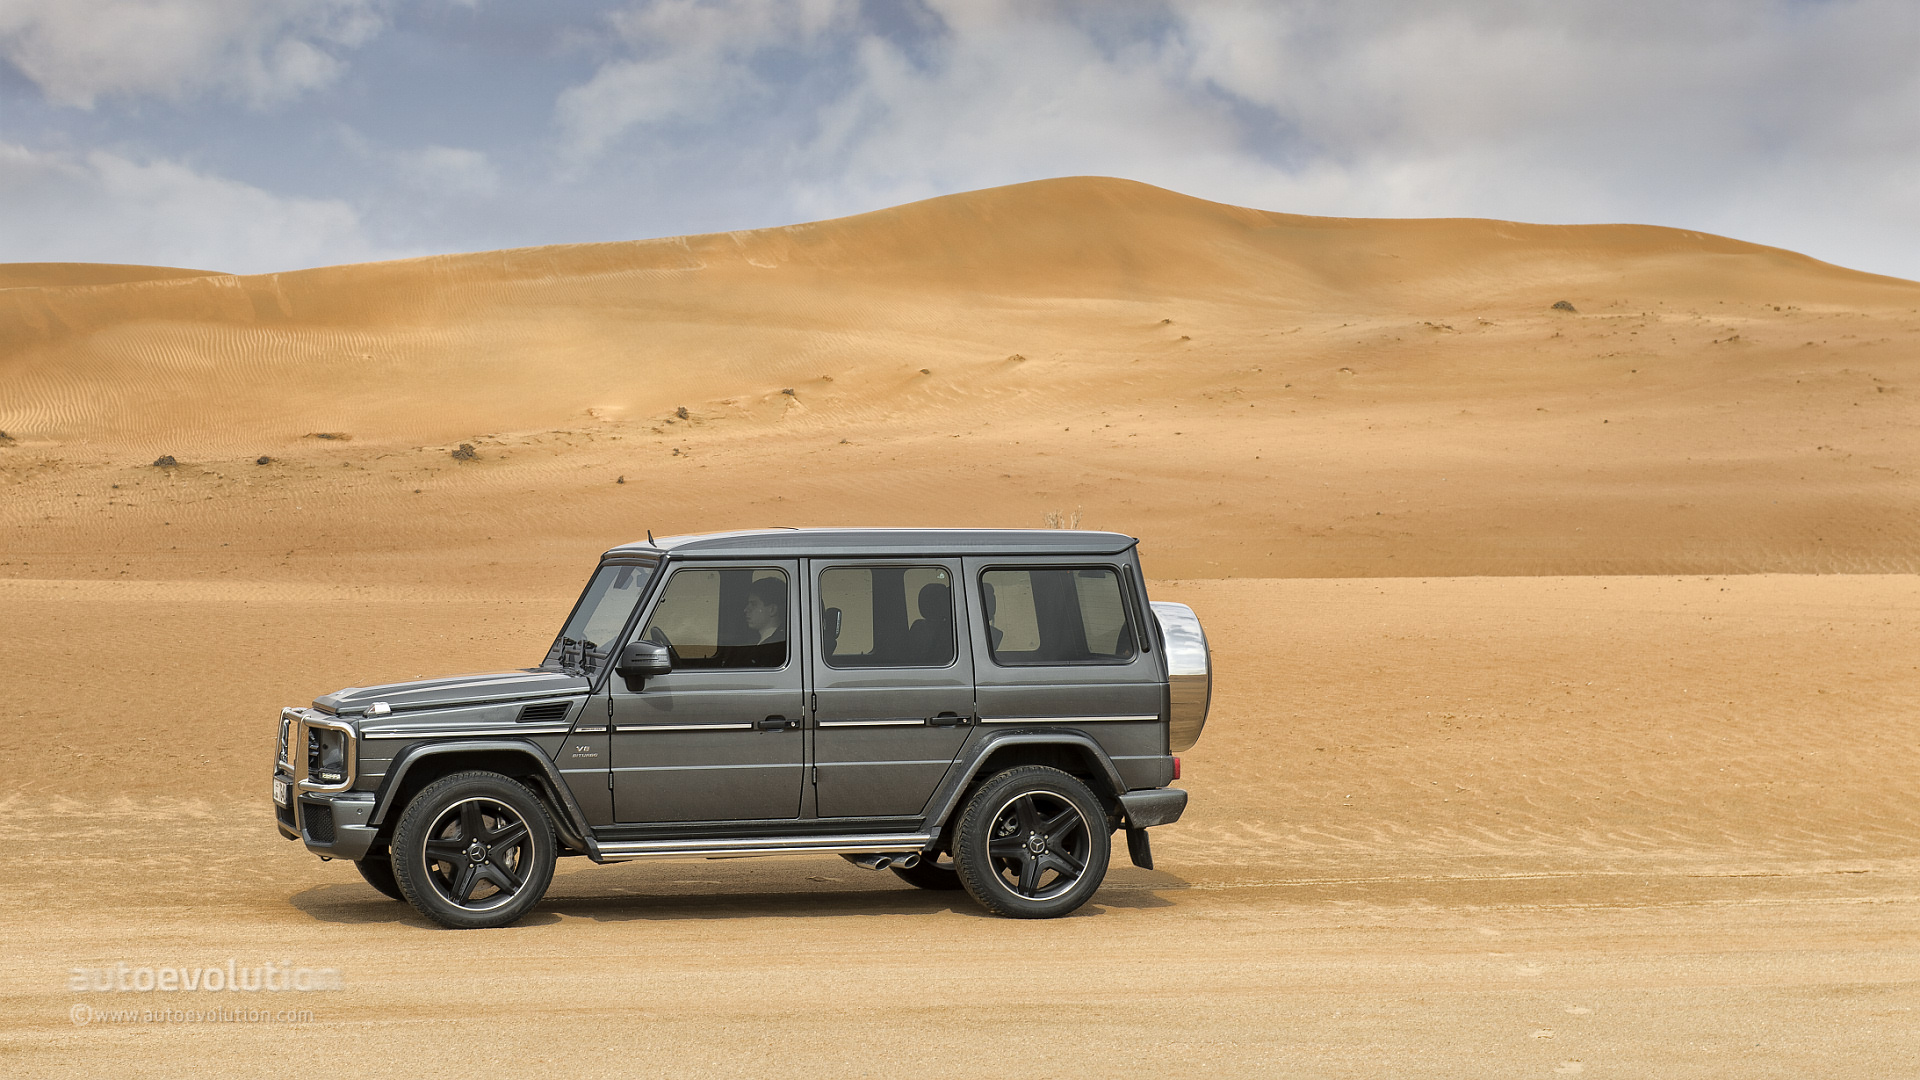 Monaco car show mercedes g63 amg v8 biturbo from bahrain for How much is a mercedes benz g63